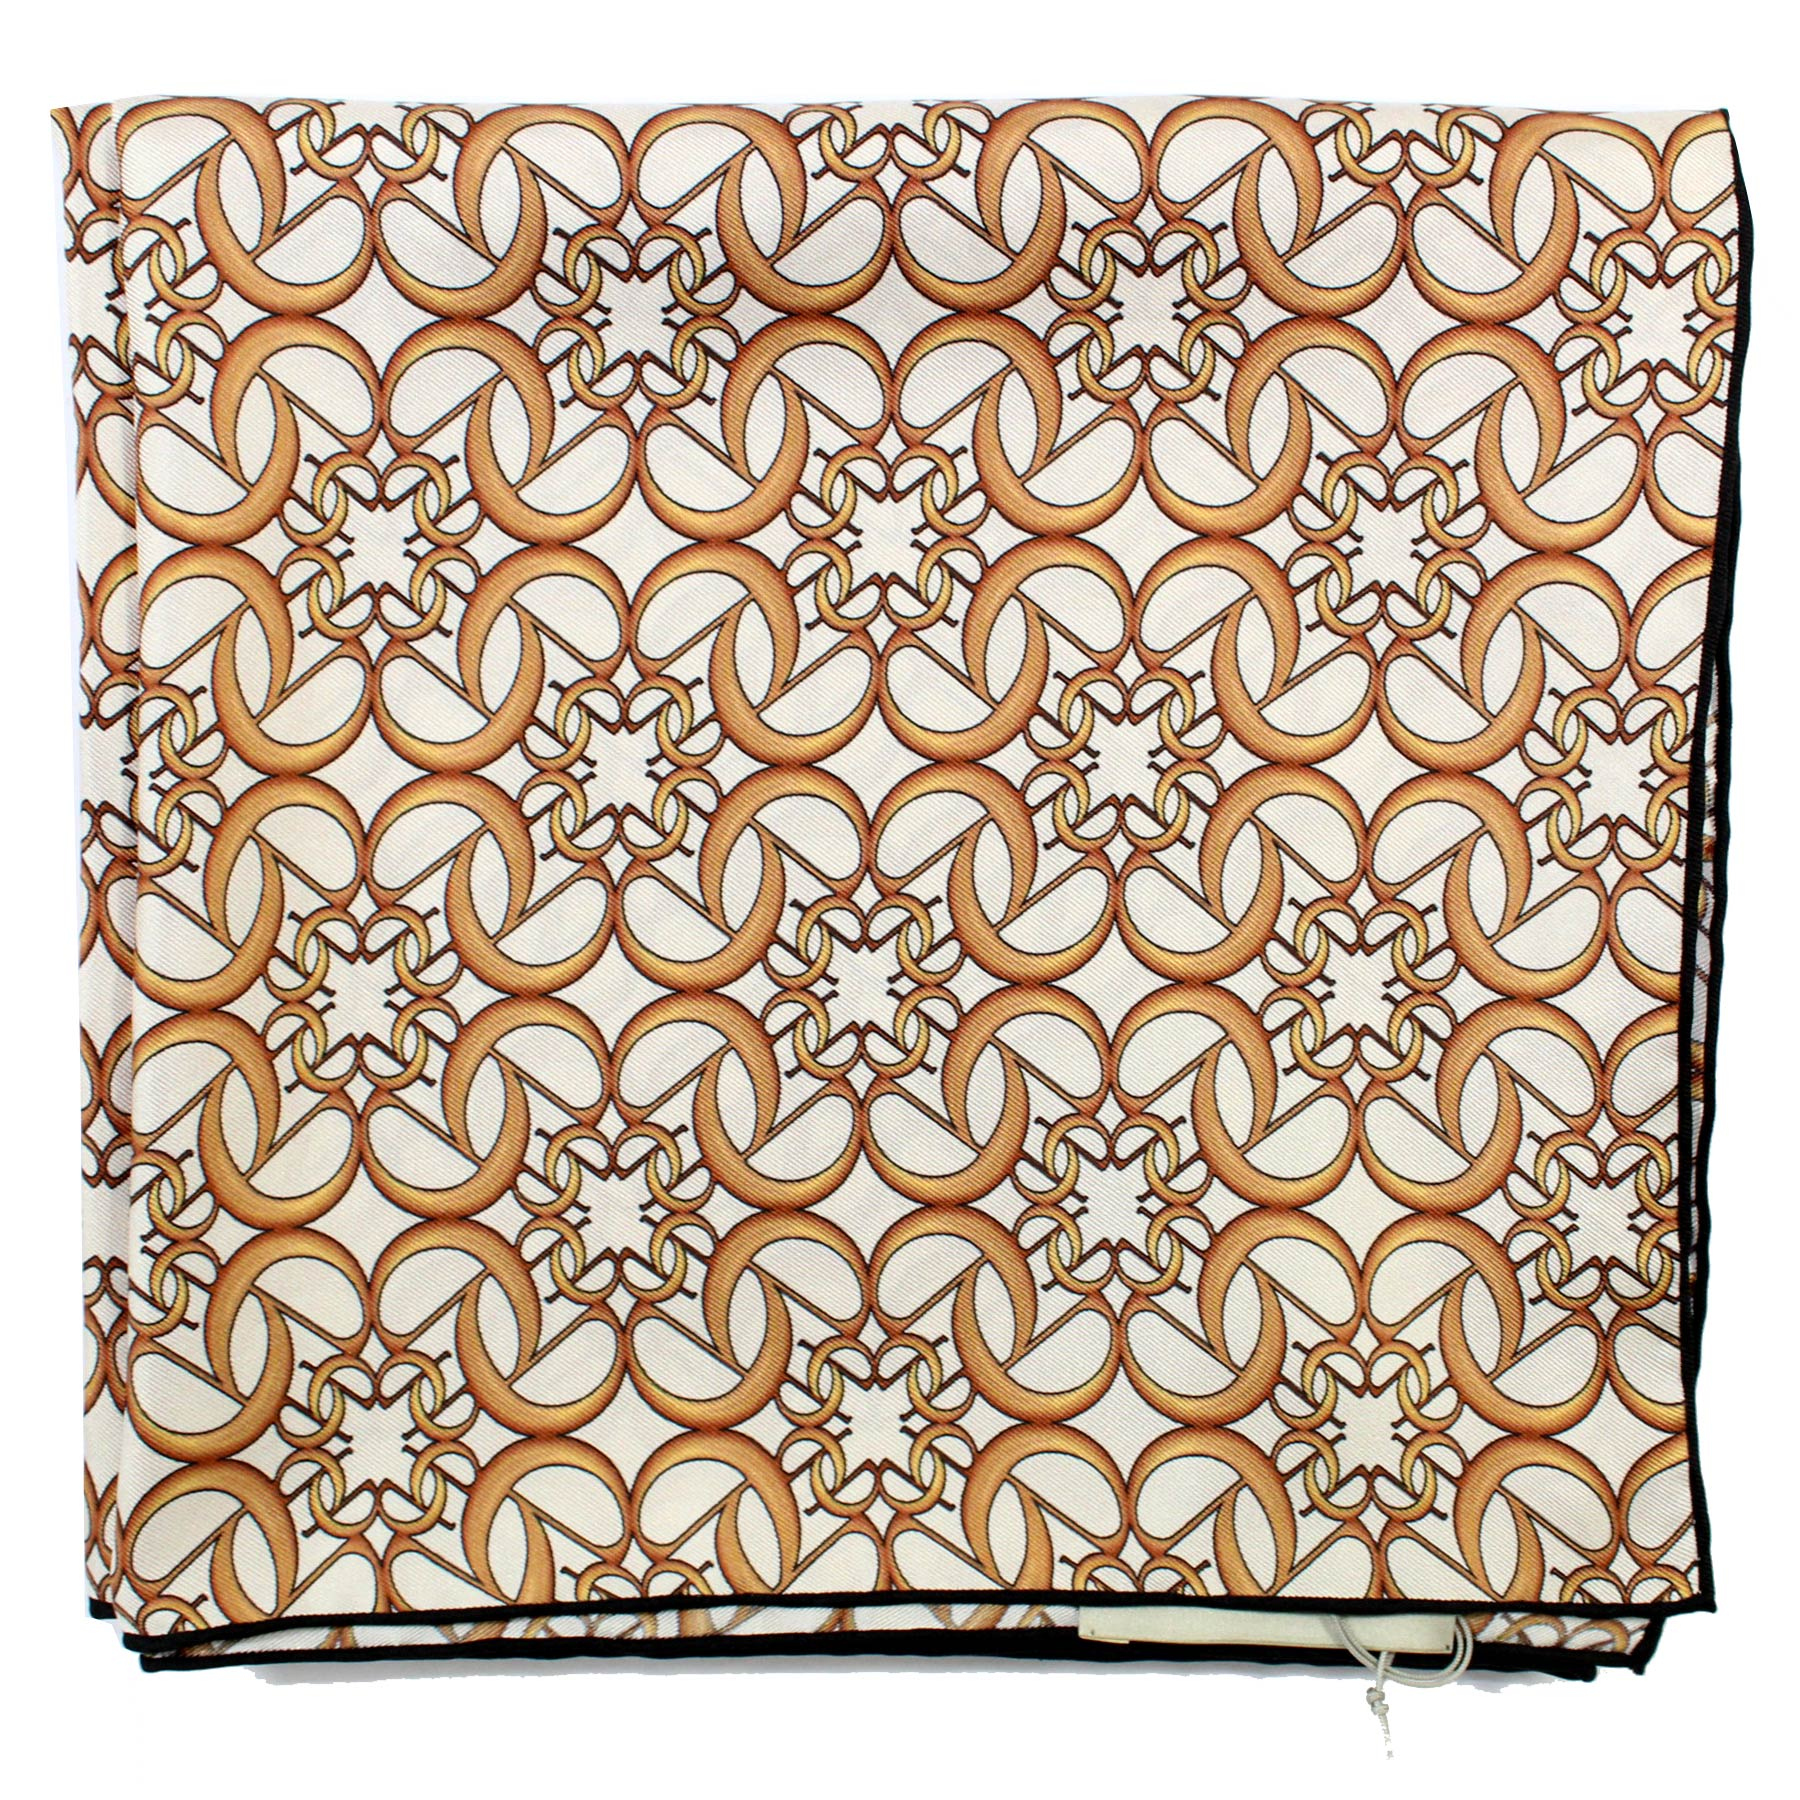 Elie Saab Scarf White Brown-Gold Design - Large Twill Silk Square Scarf